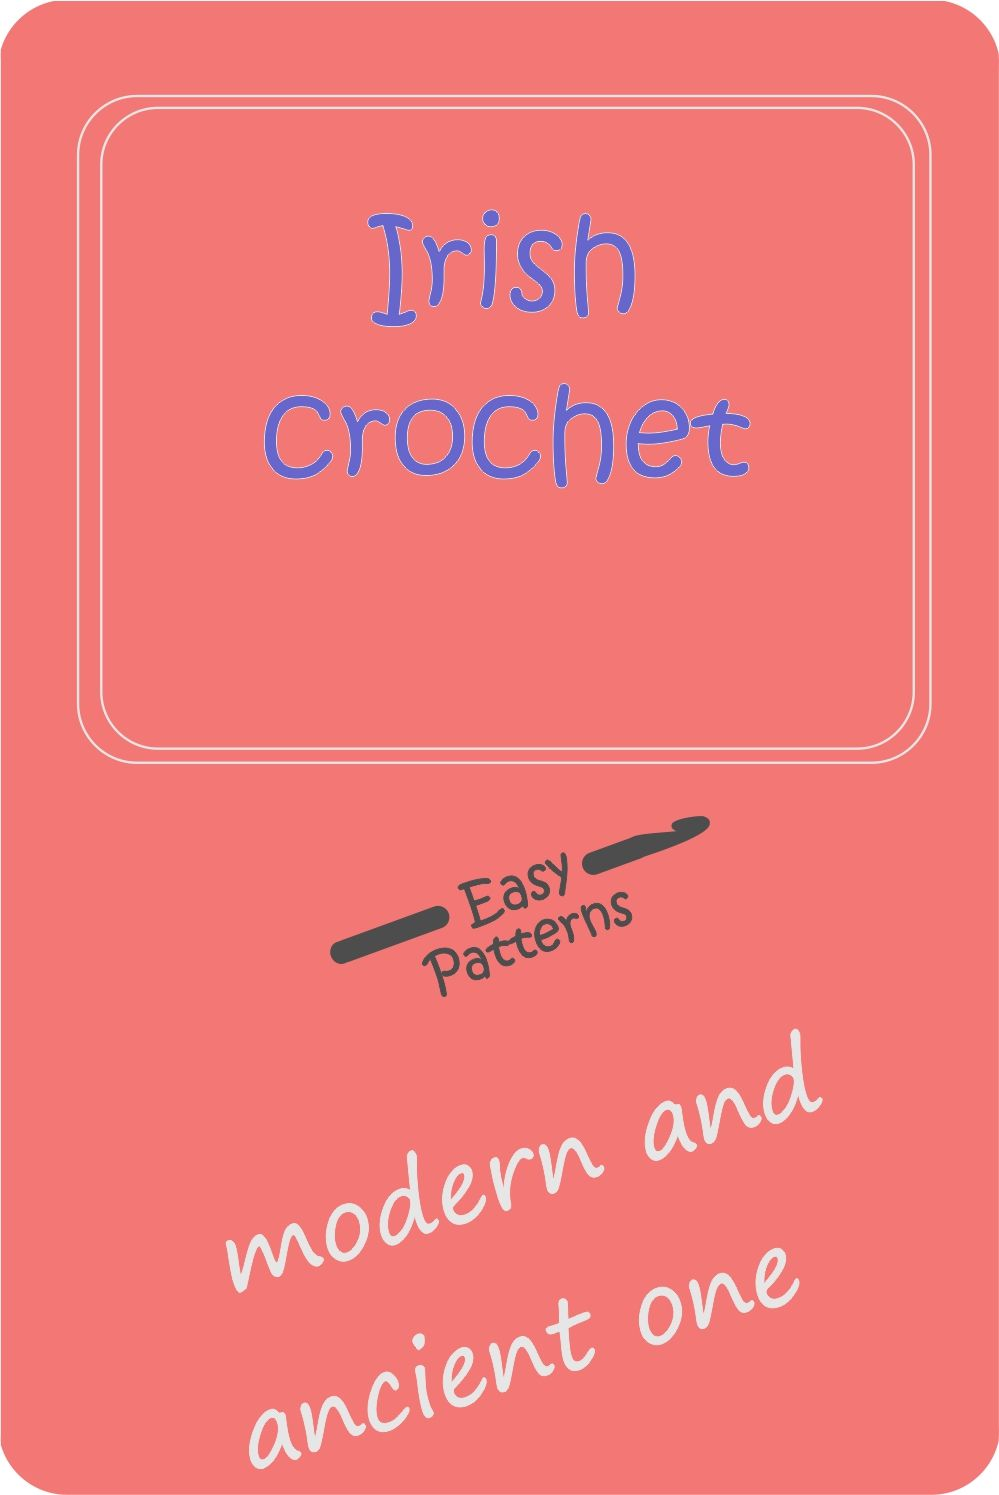 Irish crochet patterns, Irish crochet motifs, Irish crochet lace #irishcrochetmotifs